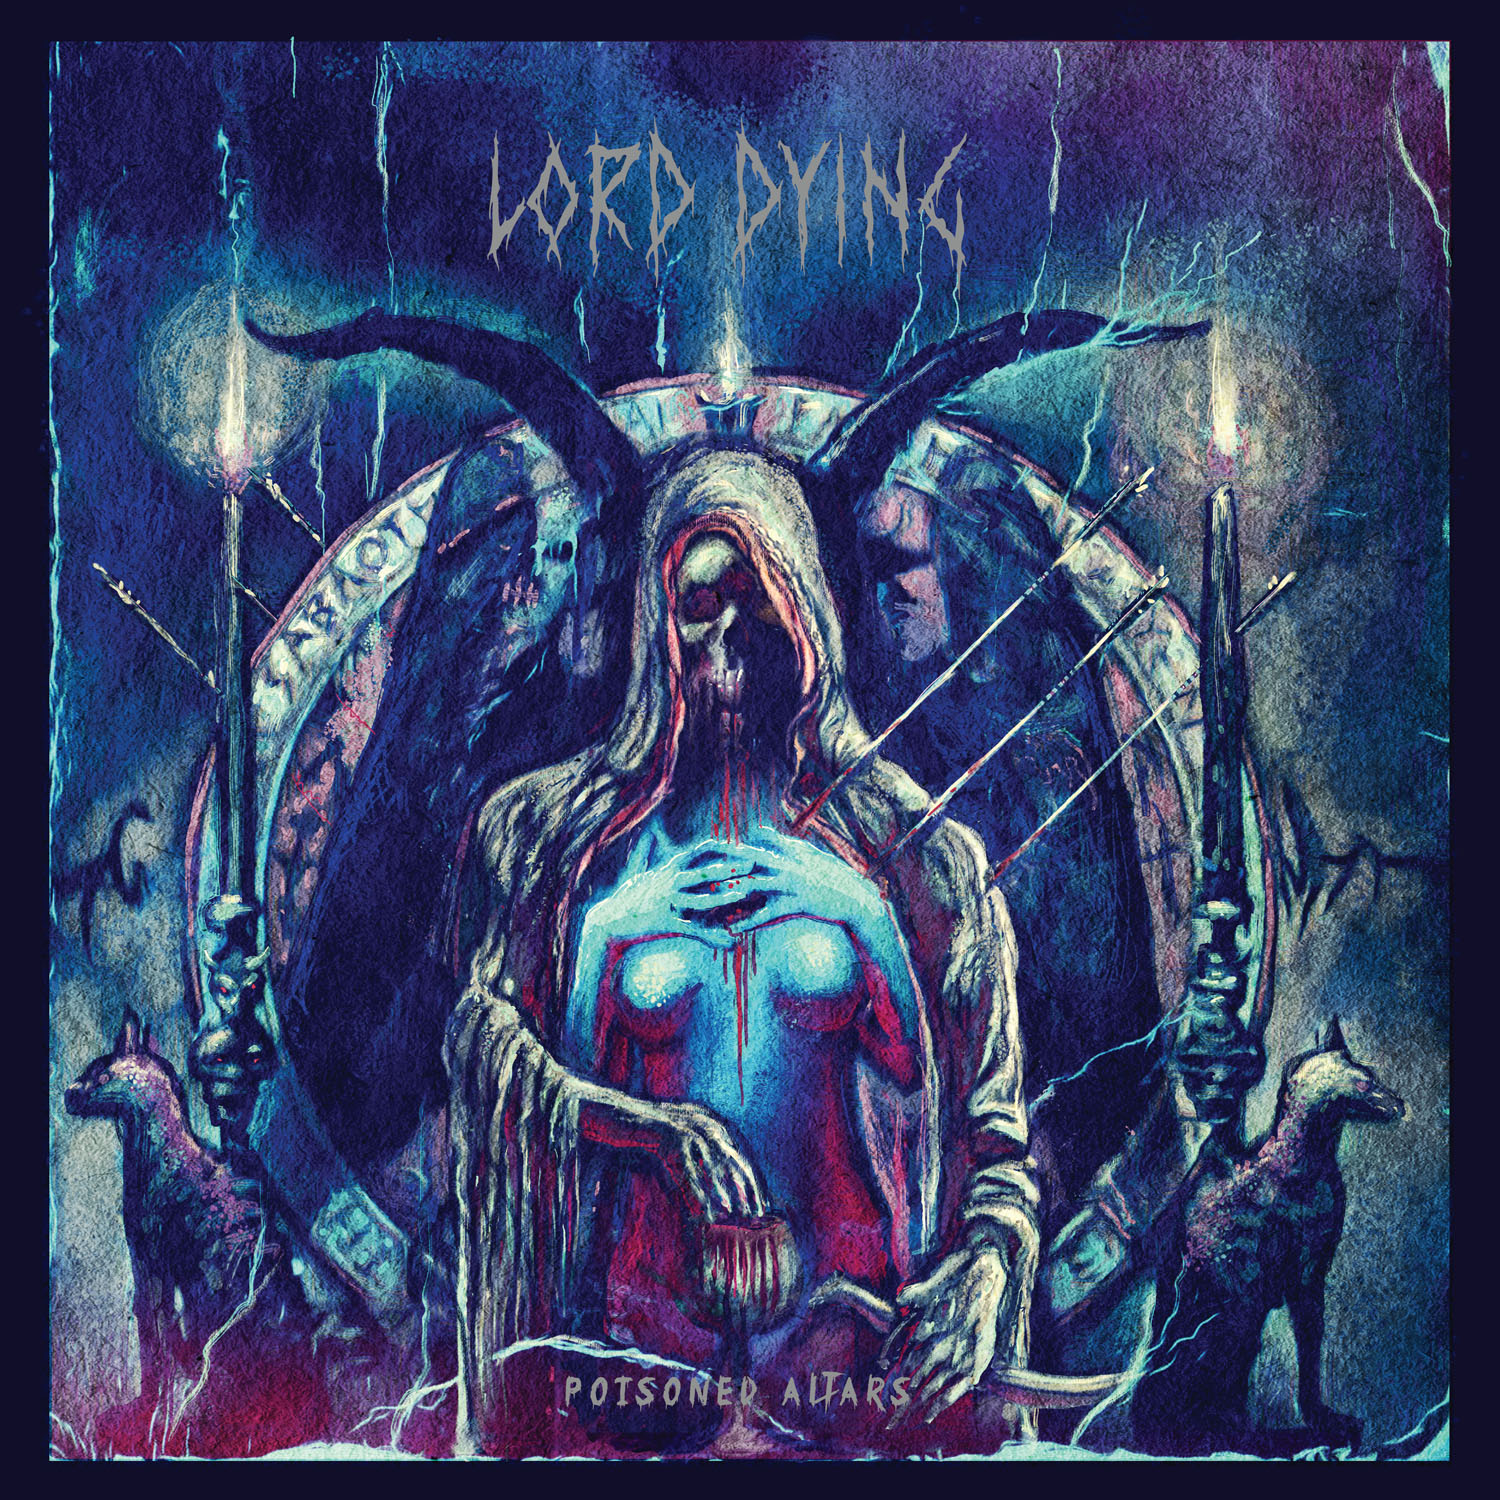 Lord Dying – Poisoned Altars Review